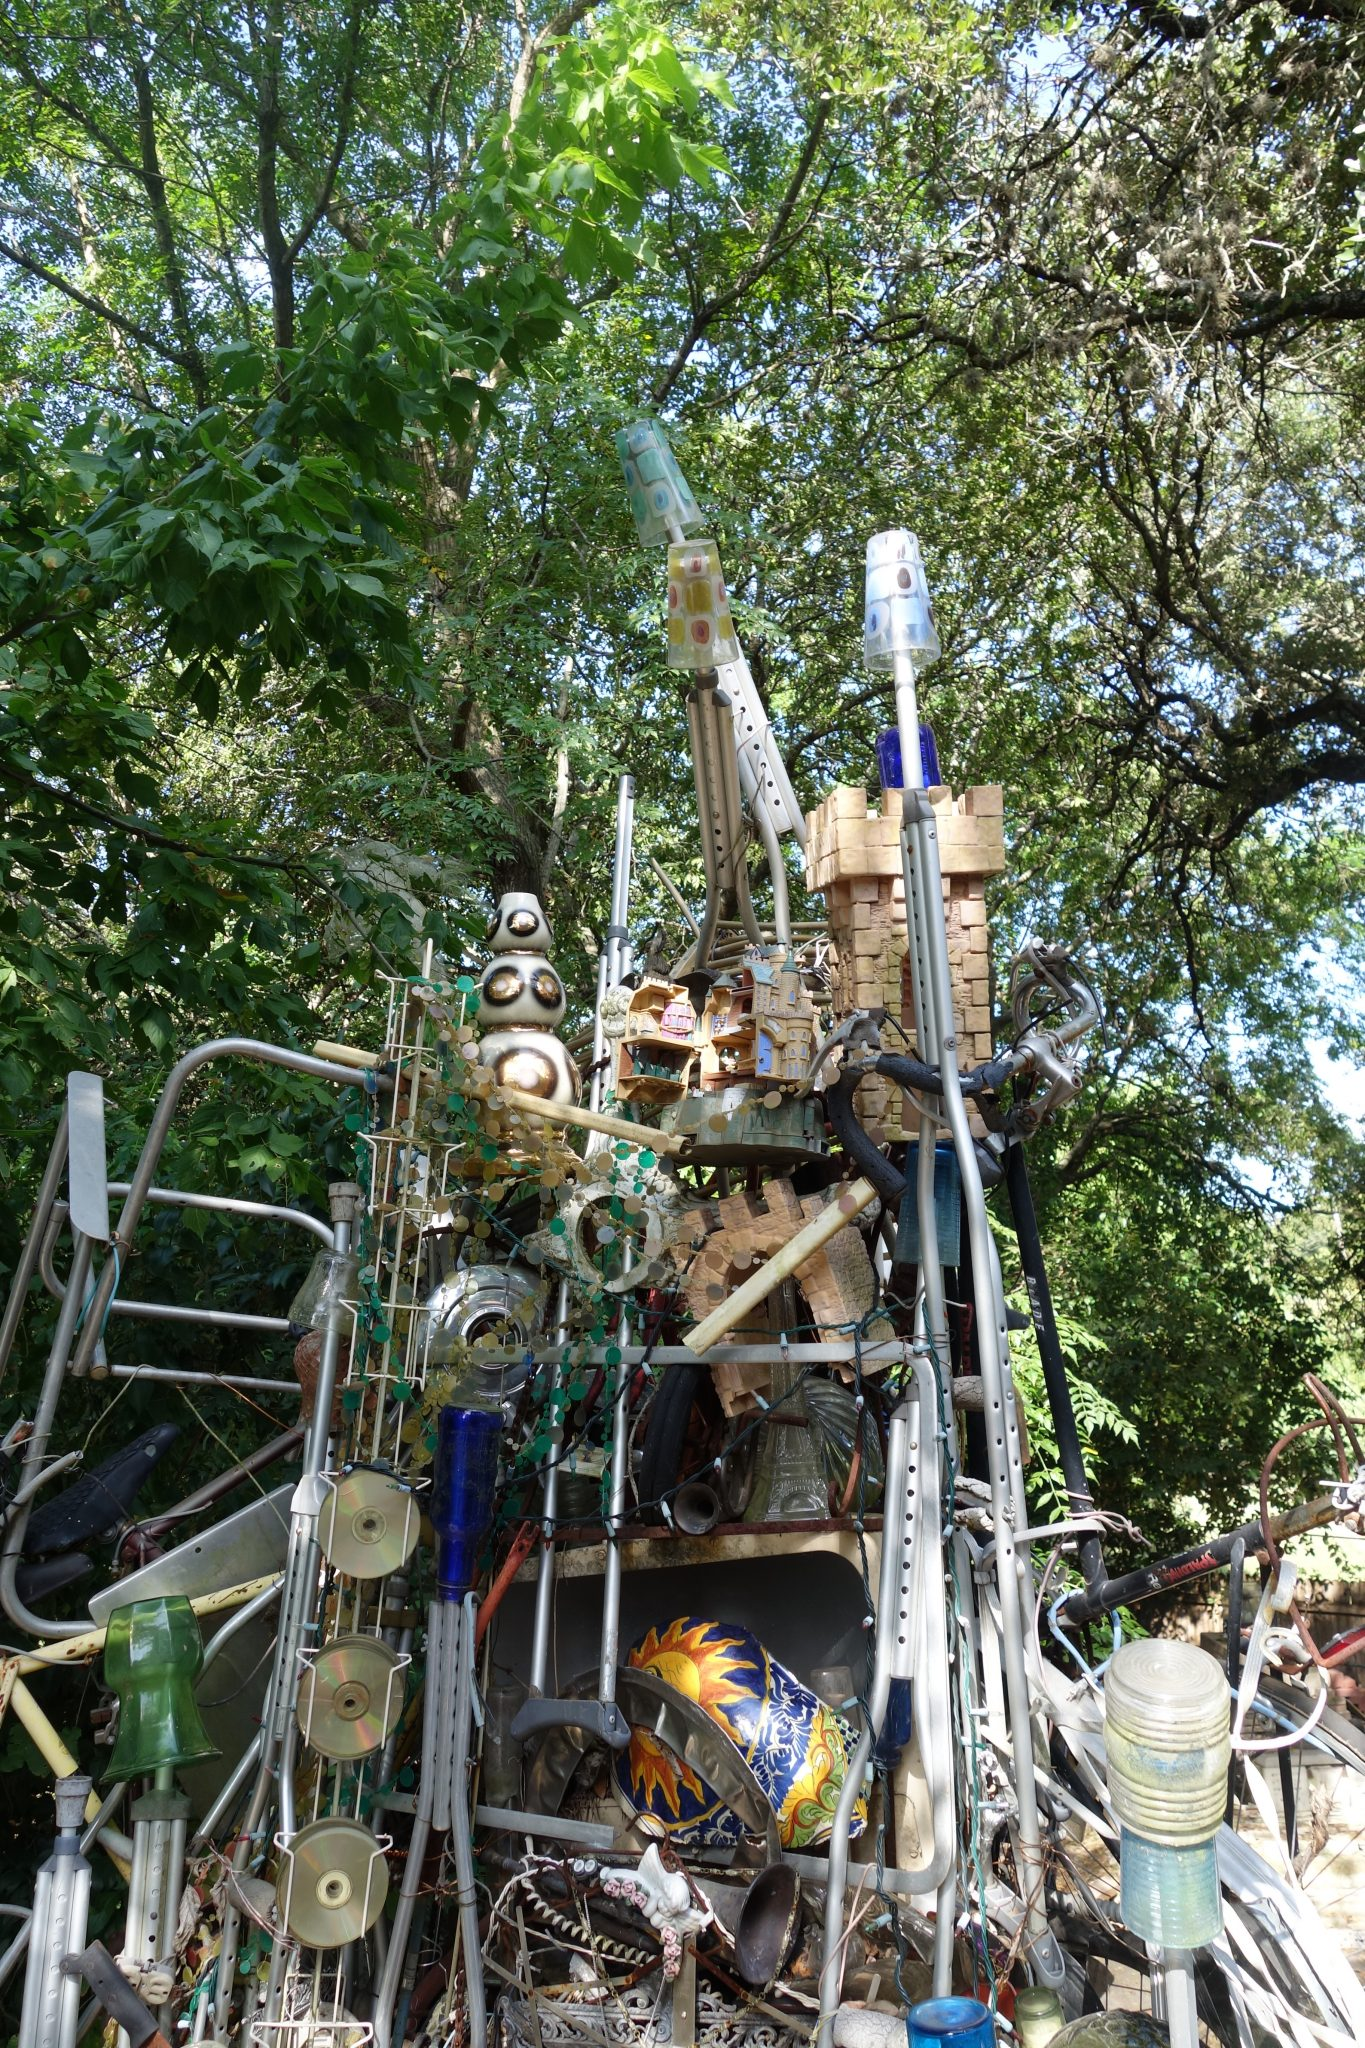 Cathedral of junk tips to visit in austin texas for Things to do near austin texas